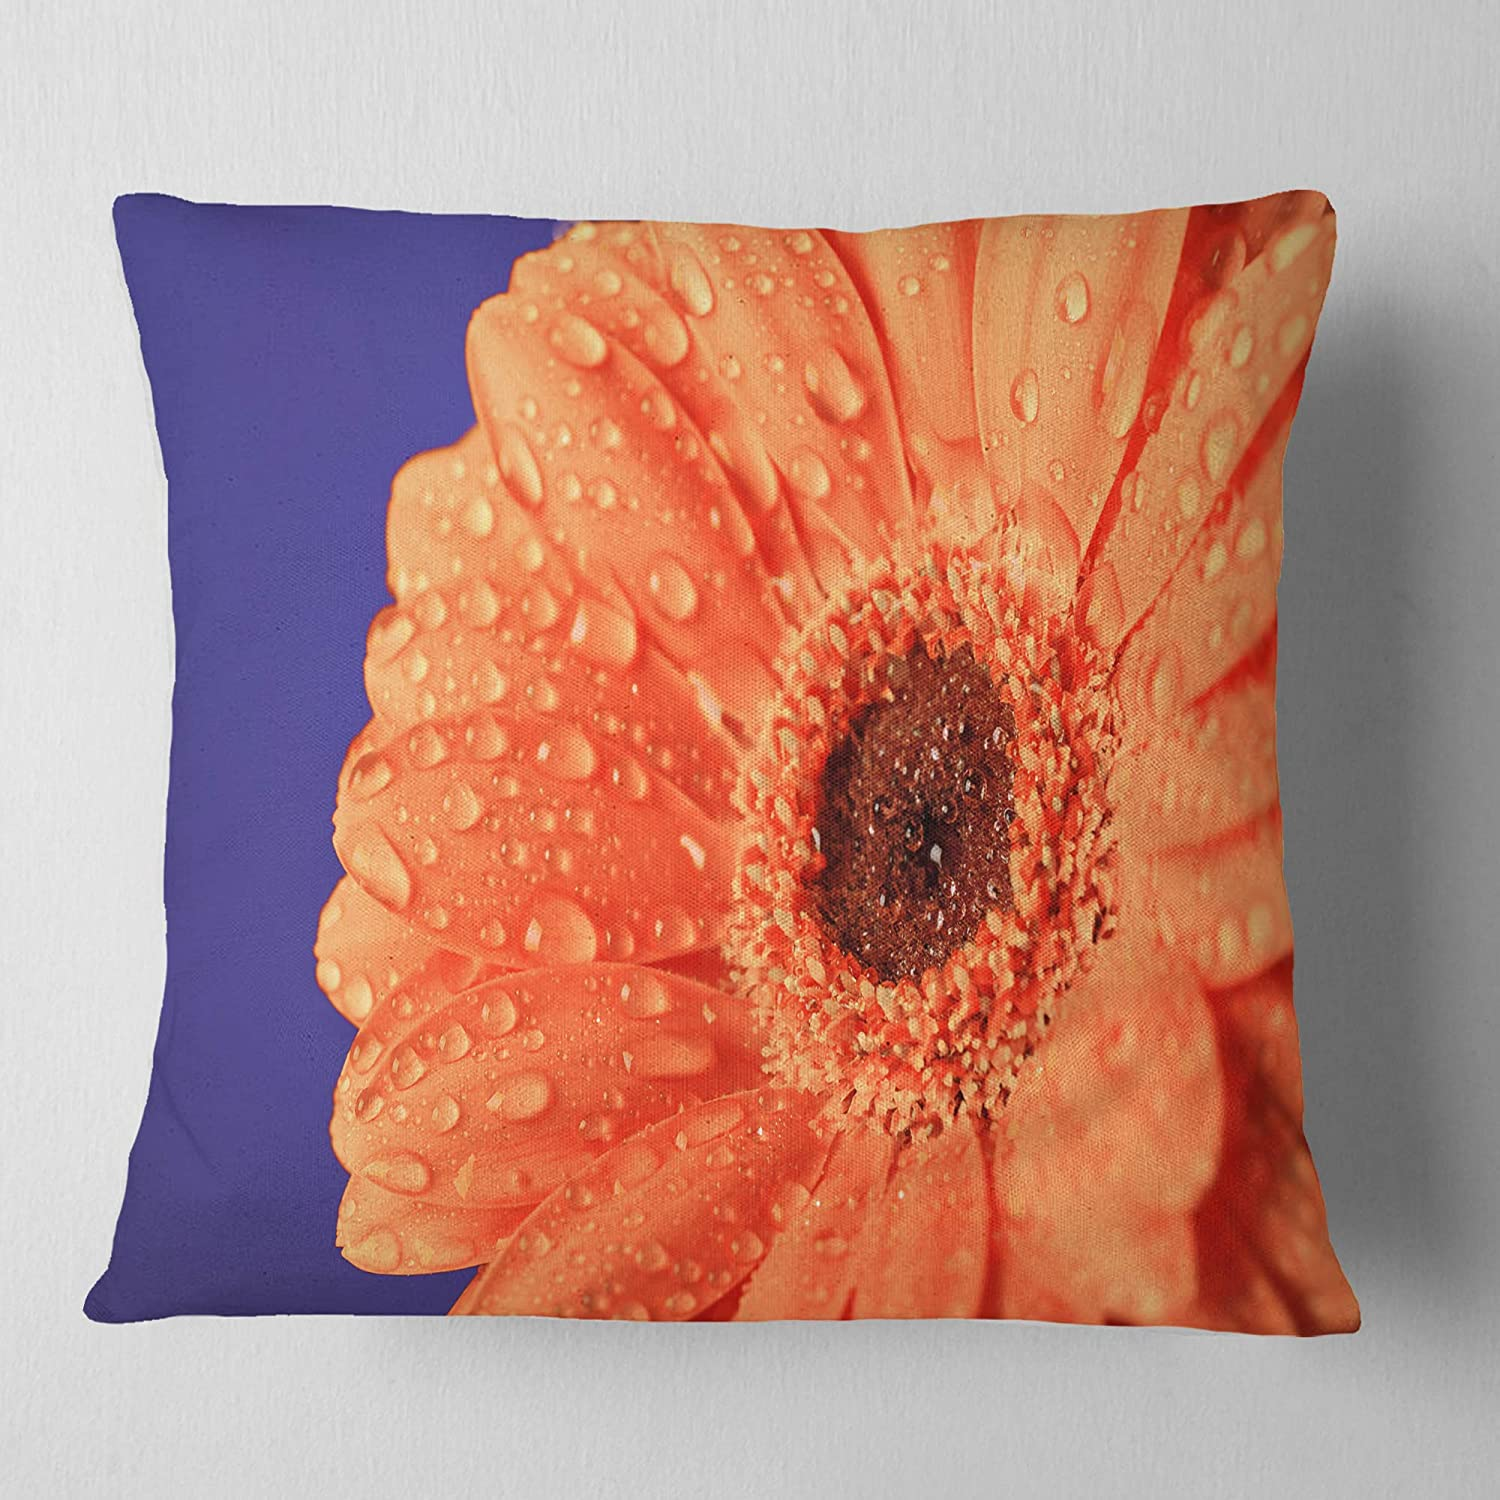 x 26 in Insert Printed On Both Side Sofa Throw Pillow 26 in Designart CU14714-26-26 Orange Daisy On Purple Background Floral Cushion Cover for Living Room in